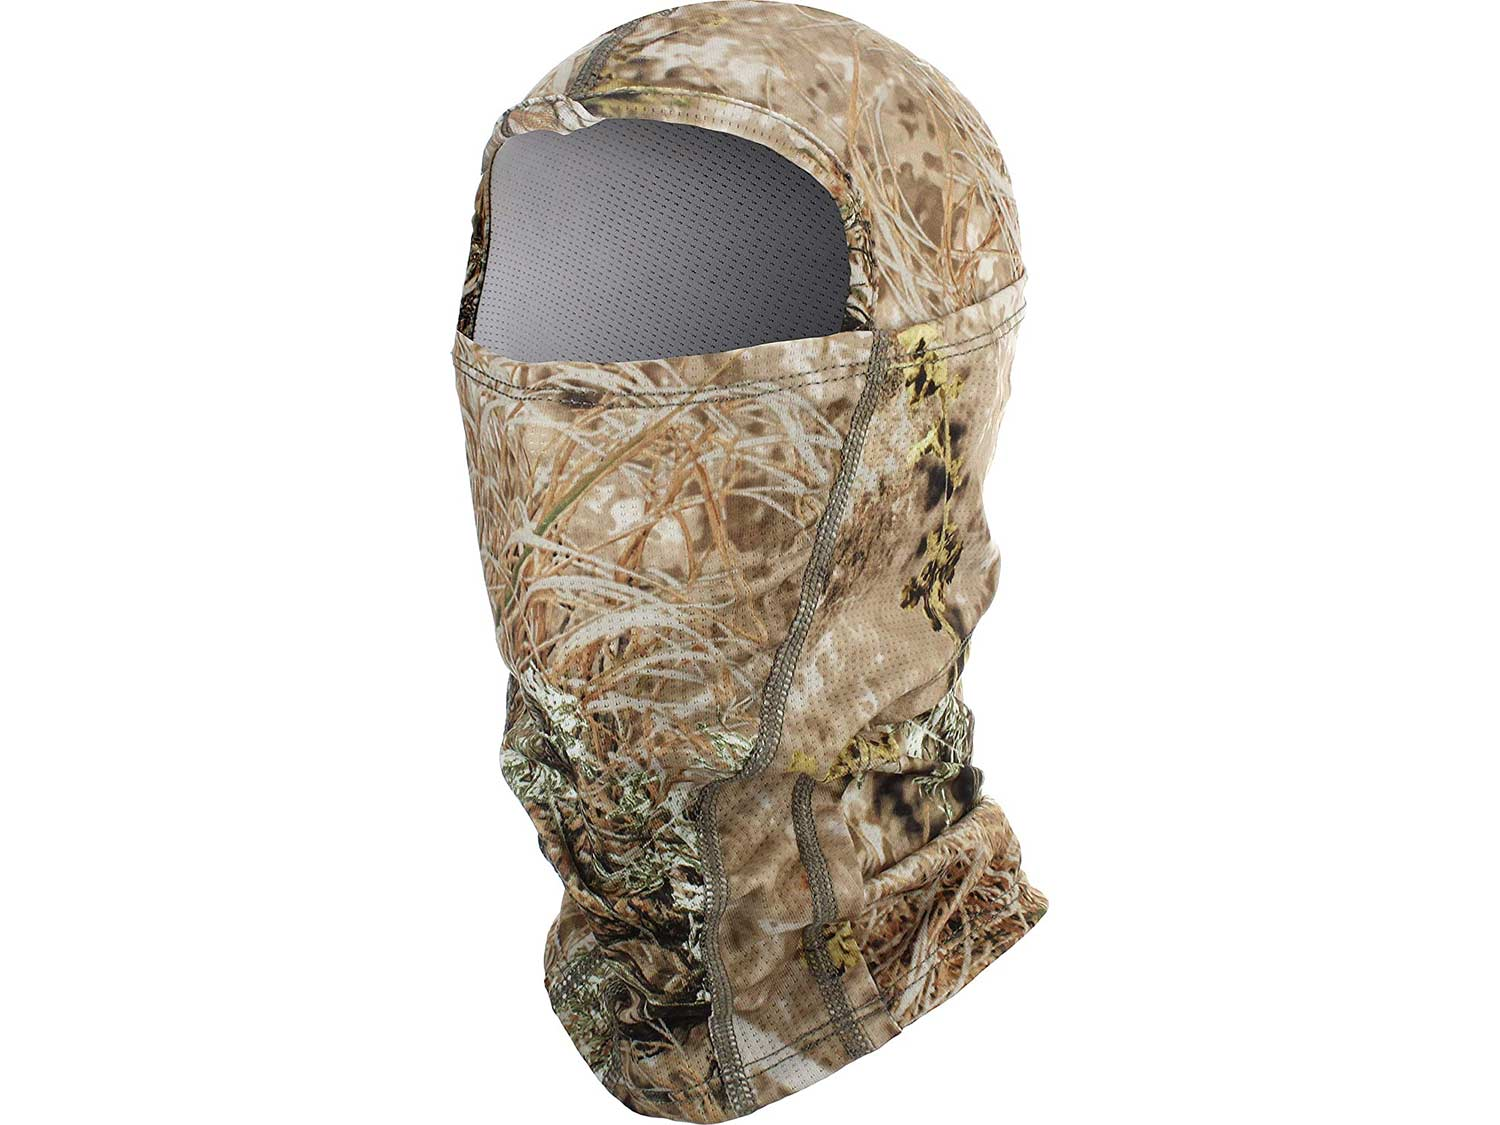 Cabela's Camo Hunting Face Mask.